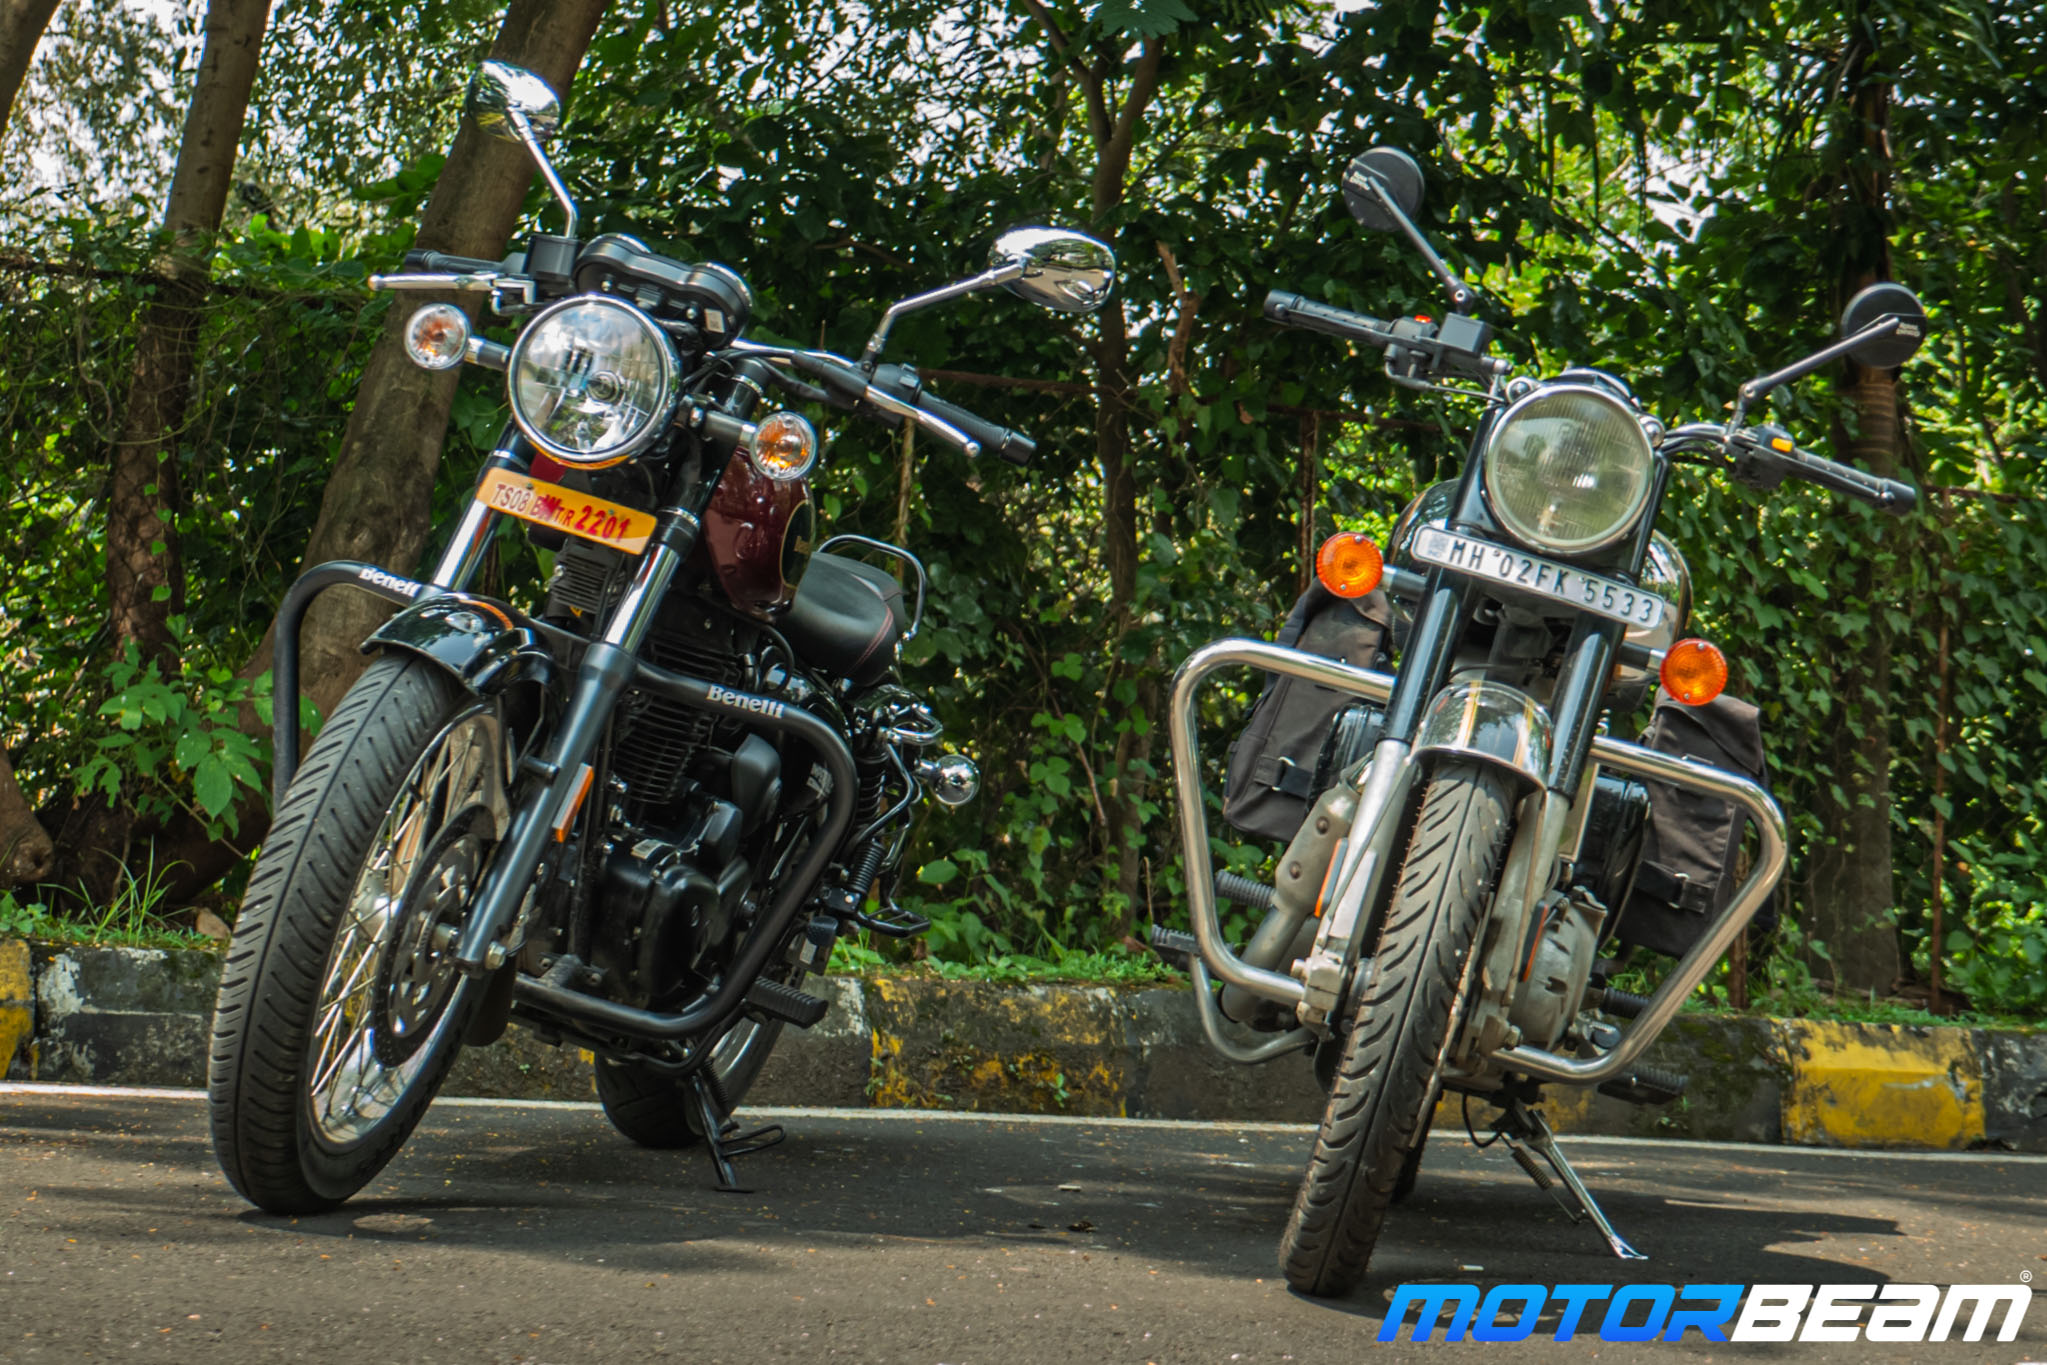 Benelli Imperiale 400 vs Royal Enfield Classic 350 Comparison Review 10